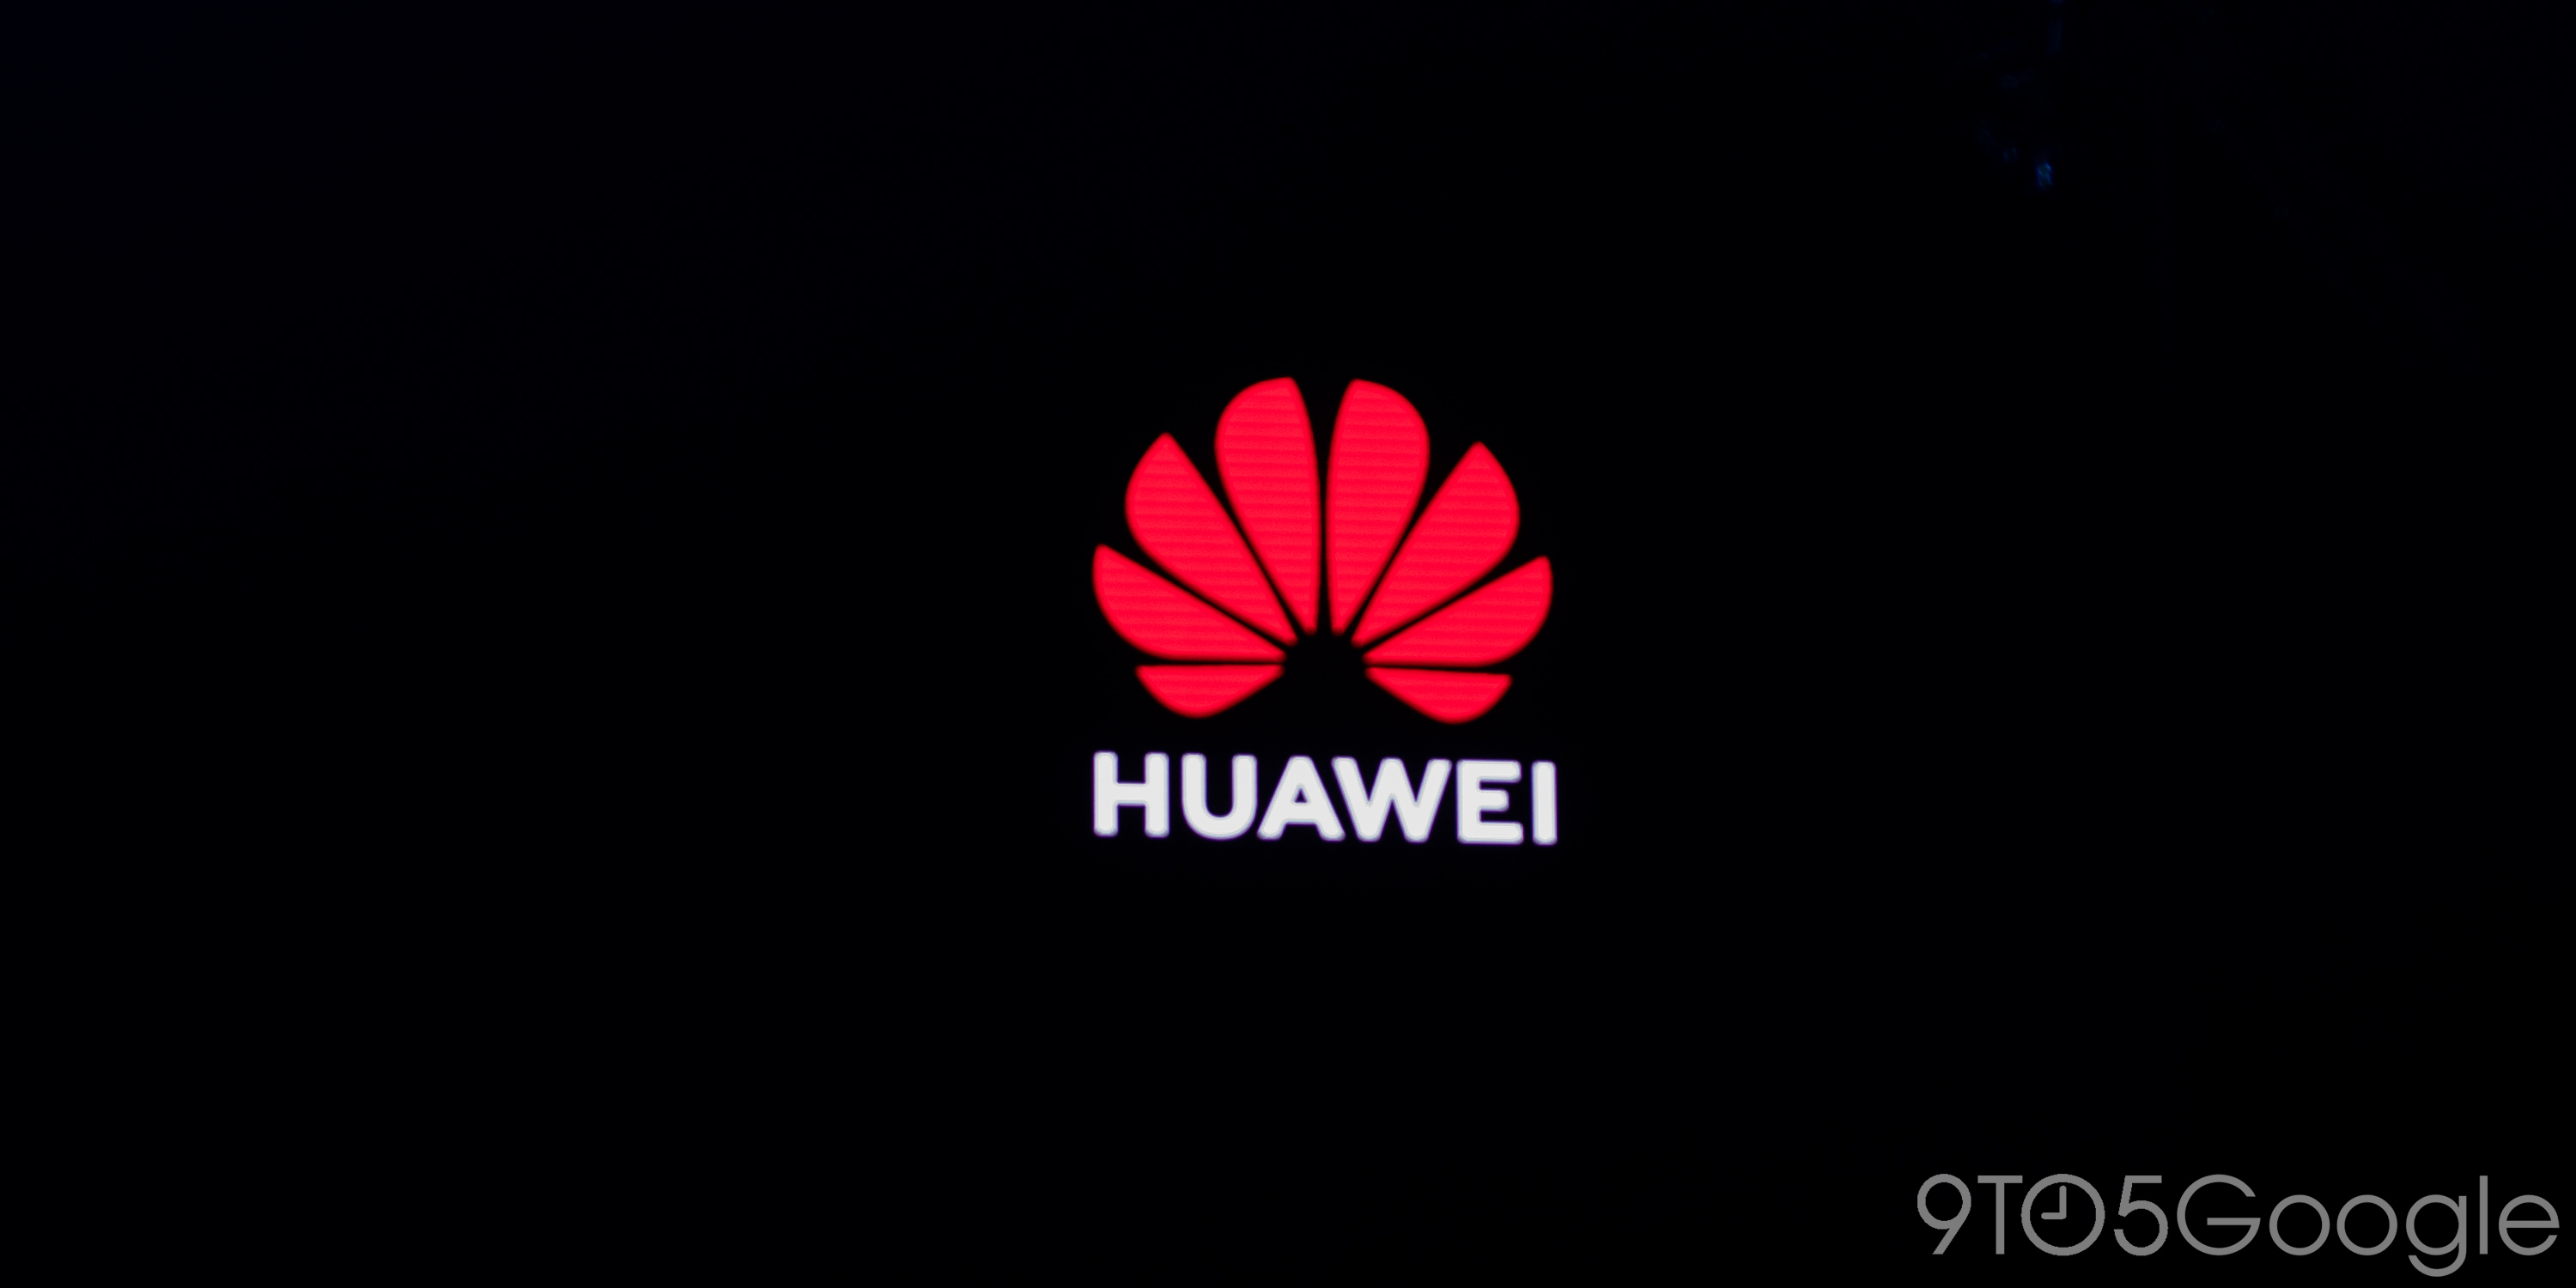 UK to phase out Huawei from 5G network infrastructure - 9to5Google